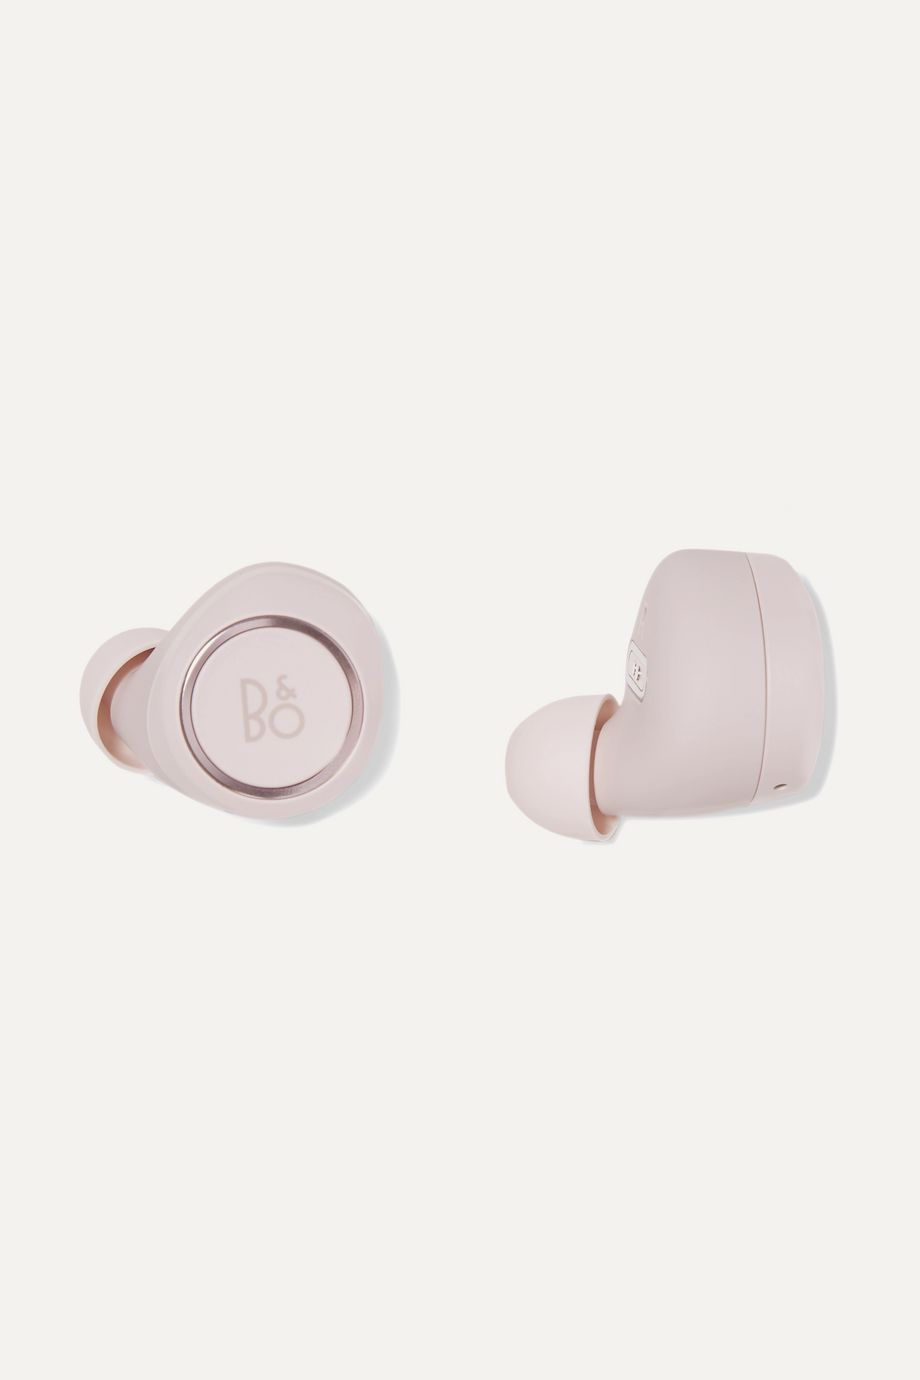 Bang & Olufsen Beoplay E8 2.0 wireless earphones